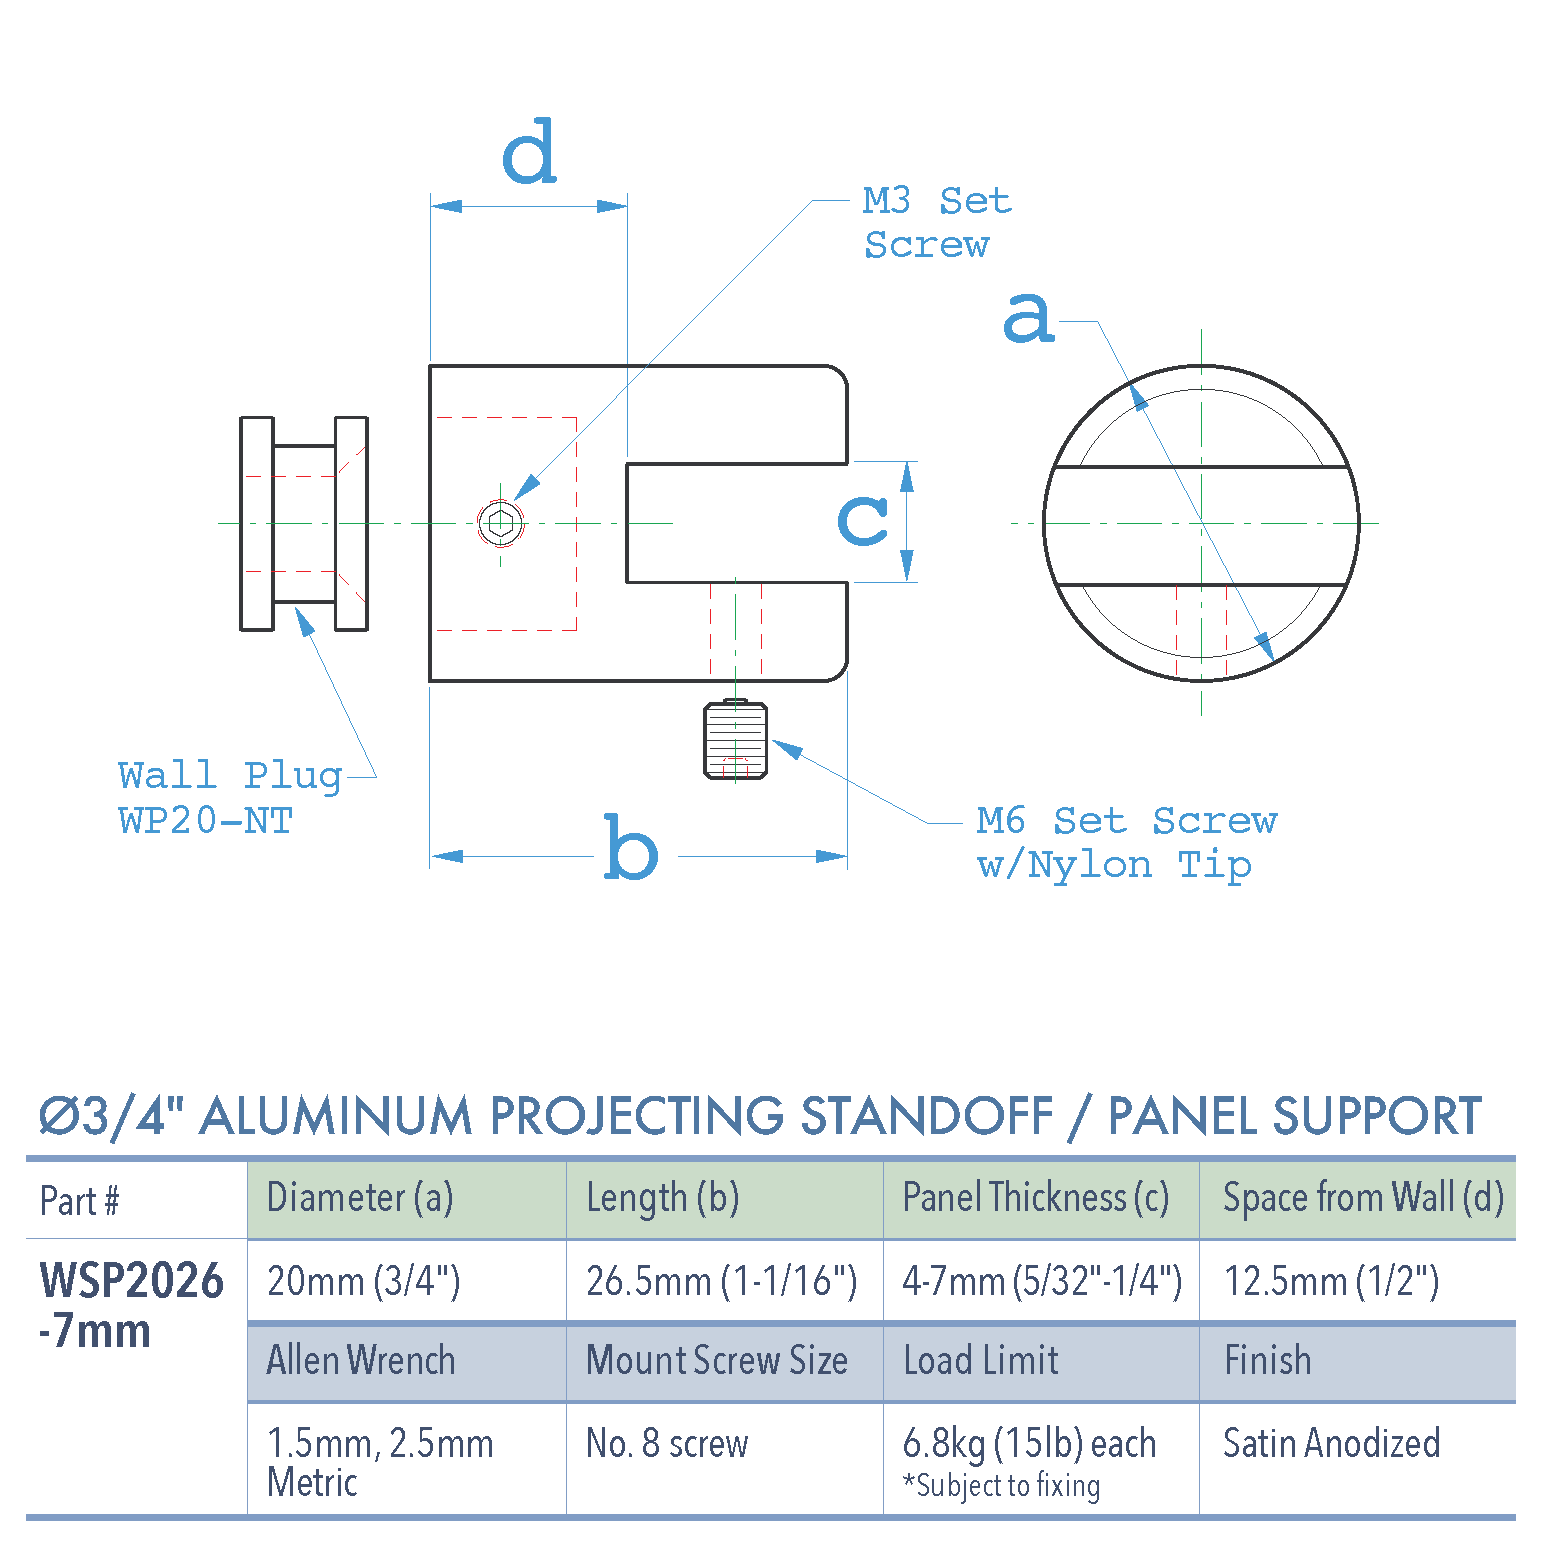 Specifications for WSP2026-7mm-AL